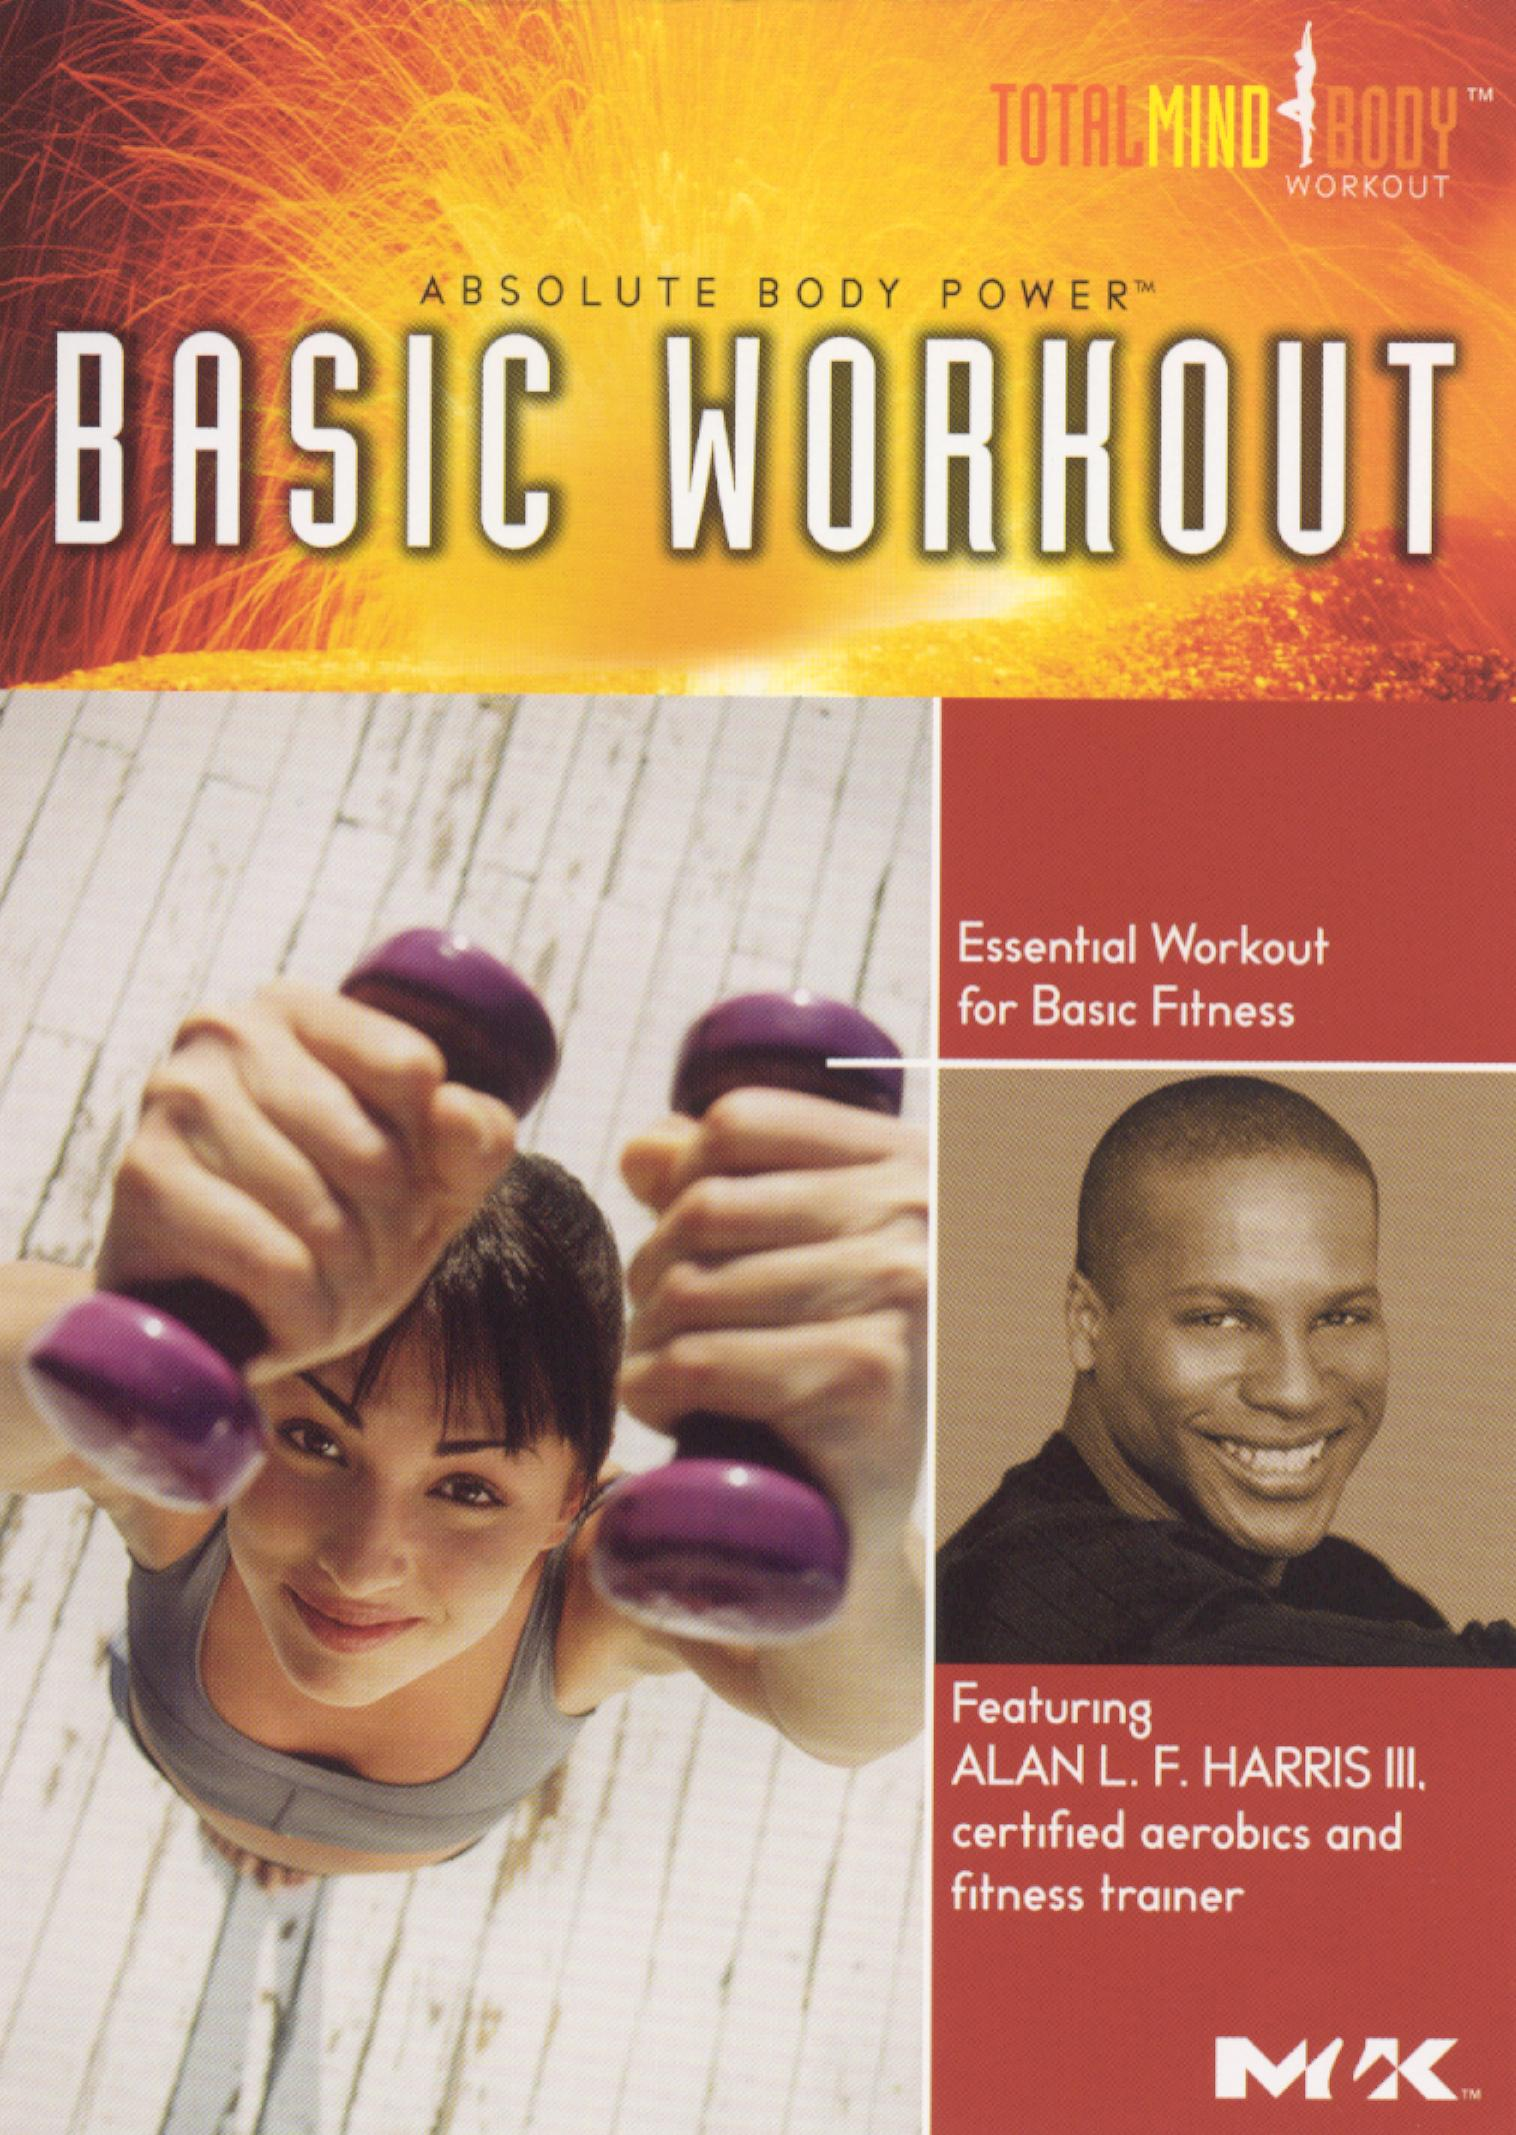 Absolute Body Power, Vol. 1: Basic Workout